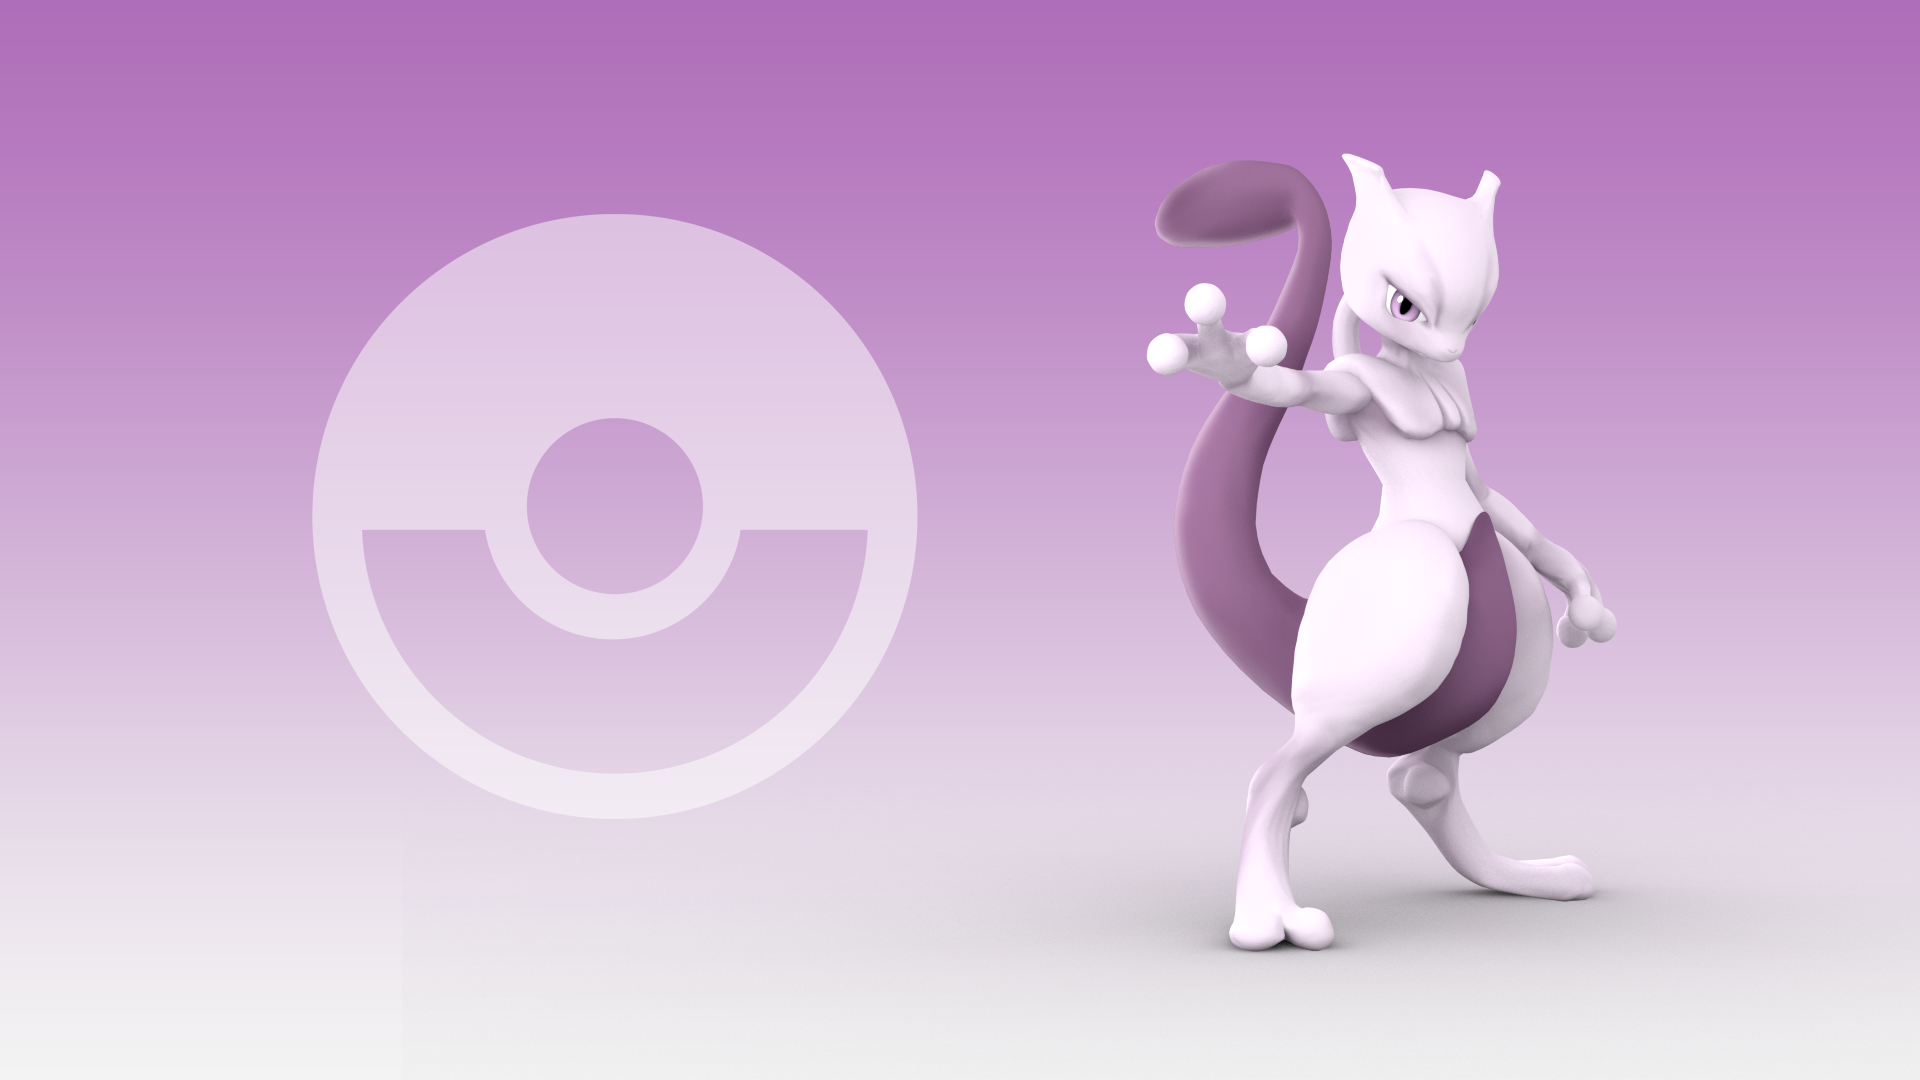 mewtwo_wallpaper__smash_3__by_ryo_10pa-d83ymrf.png